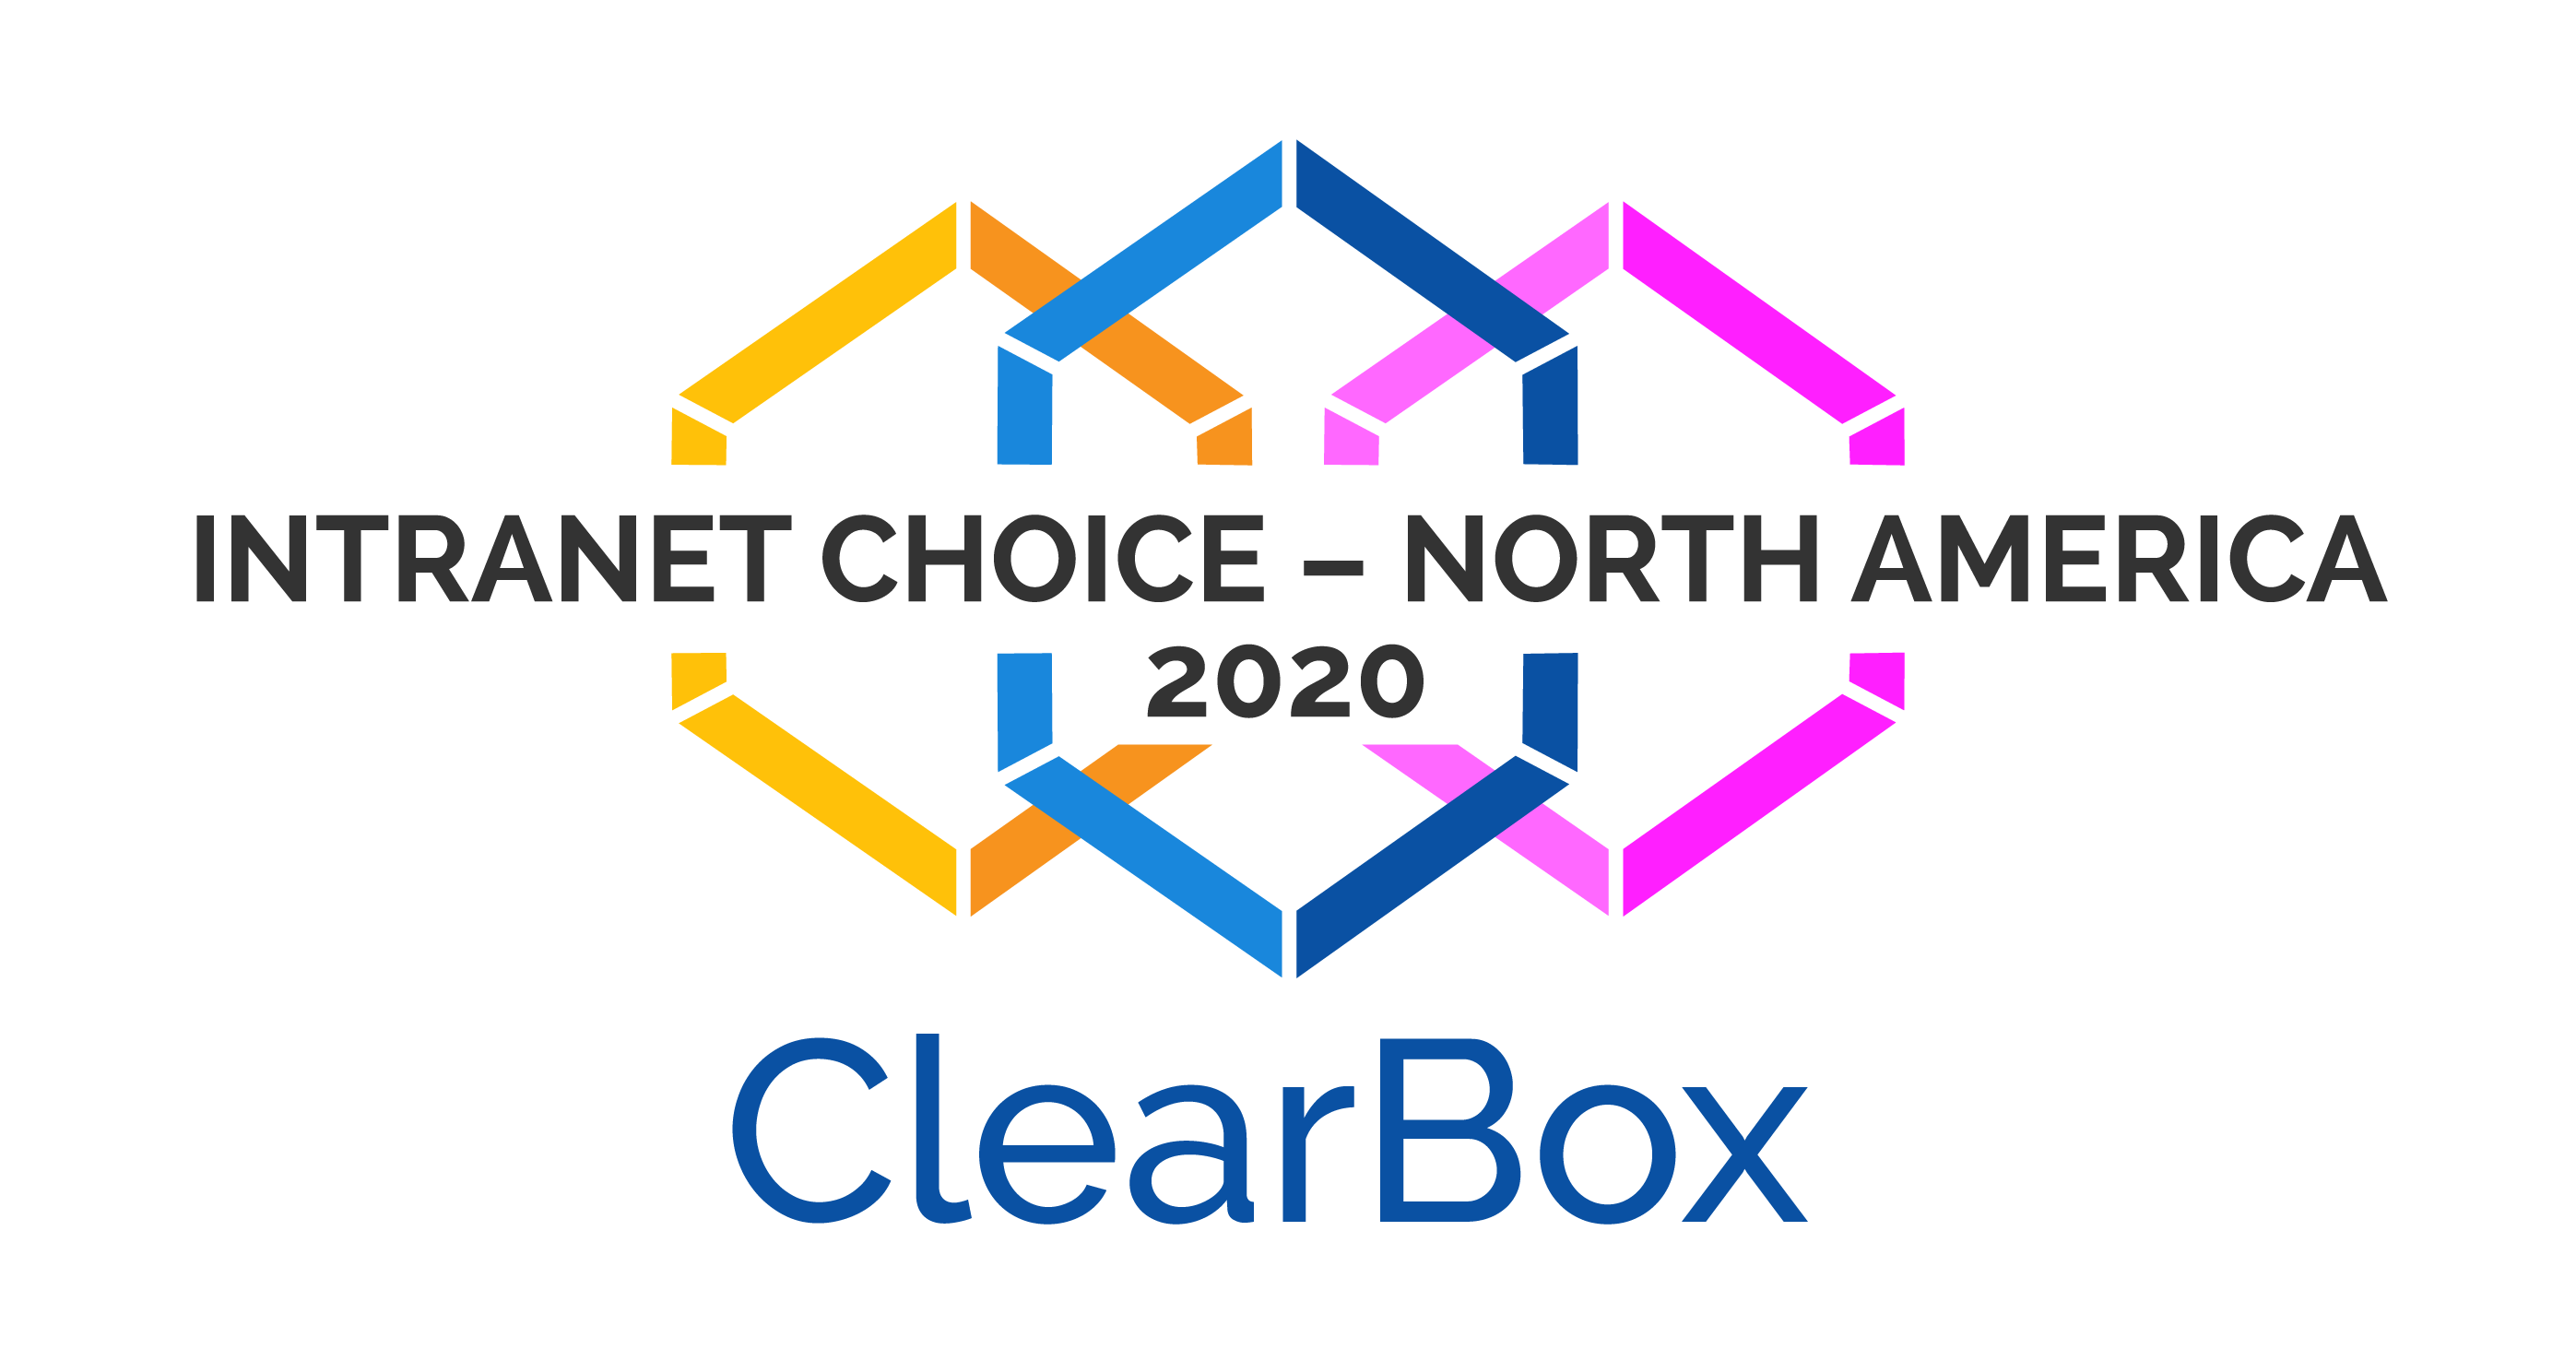 ClearBox Intranet Choice 2020 - North America.